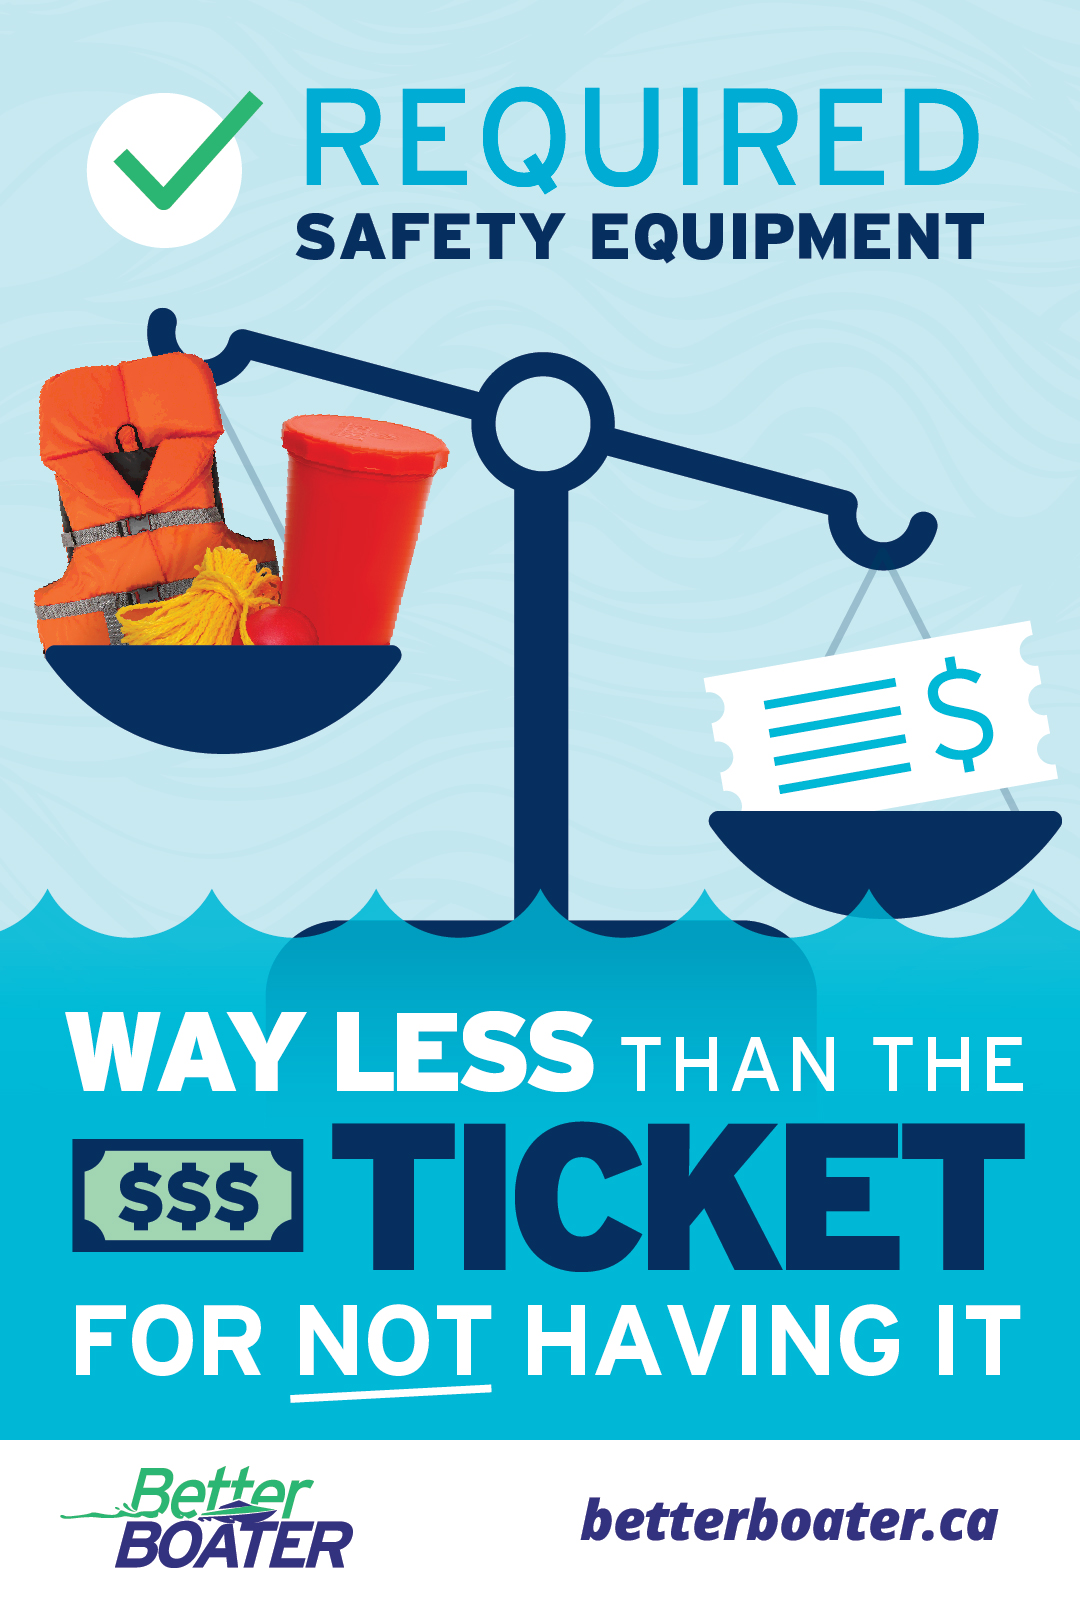 https://betterboater.ca/Cost%20of%20Safety